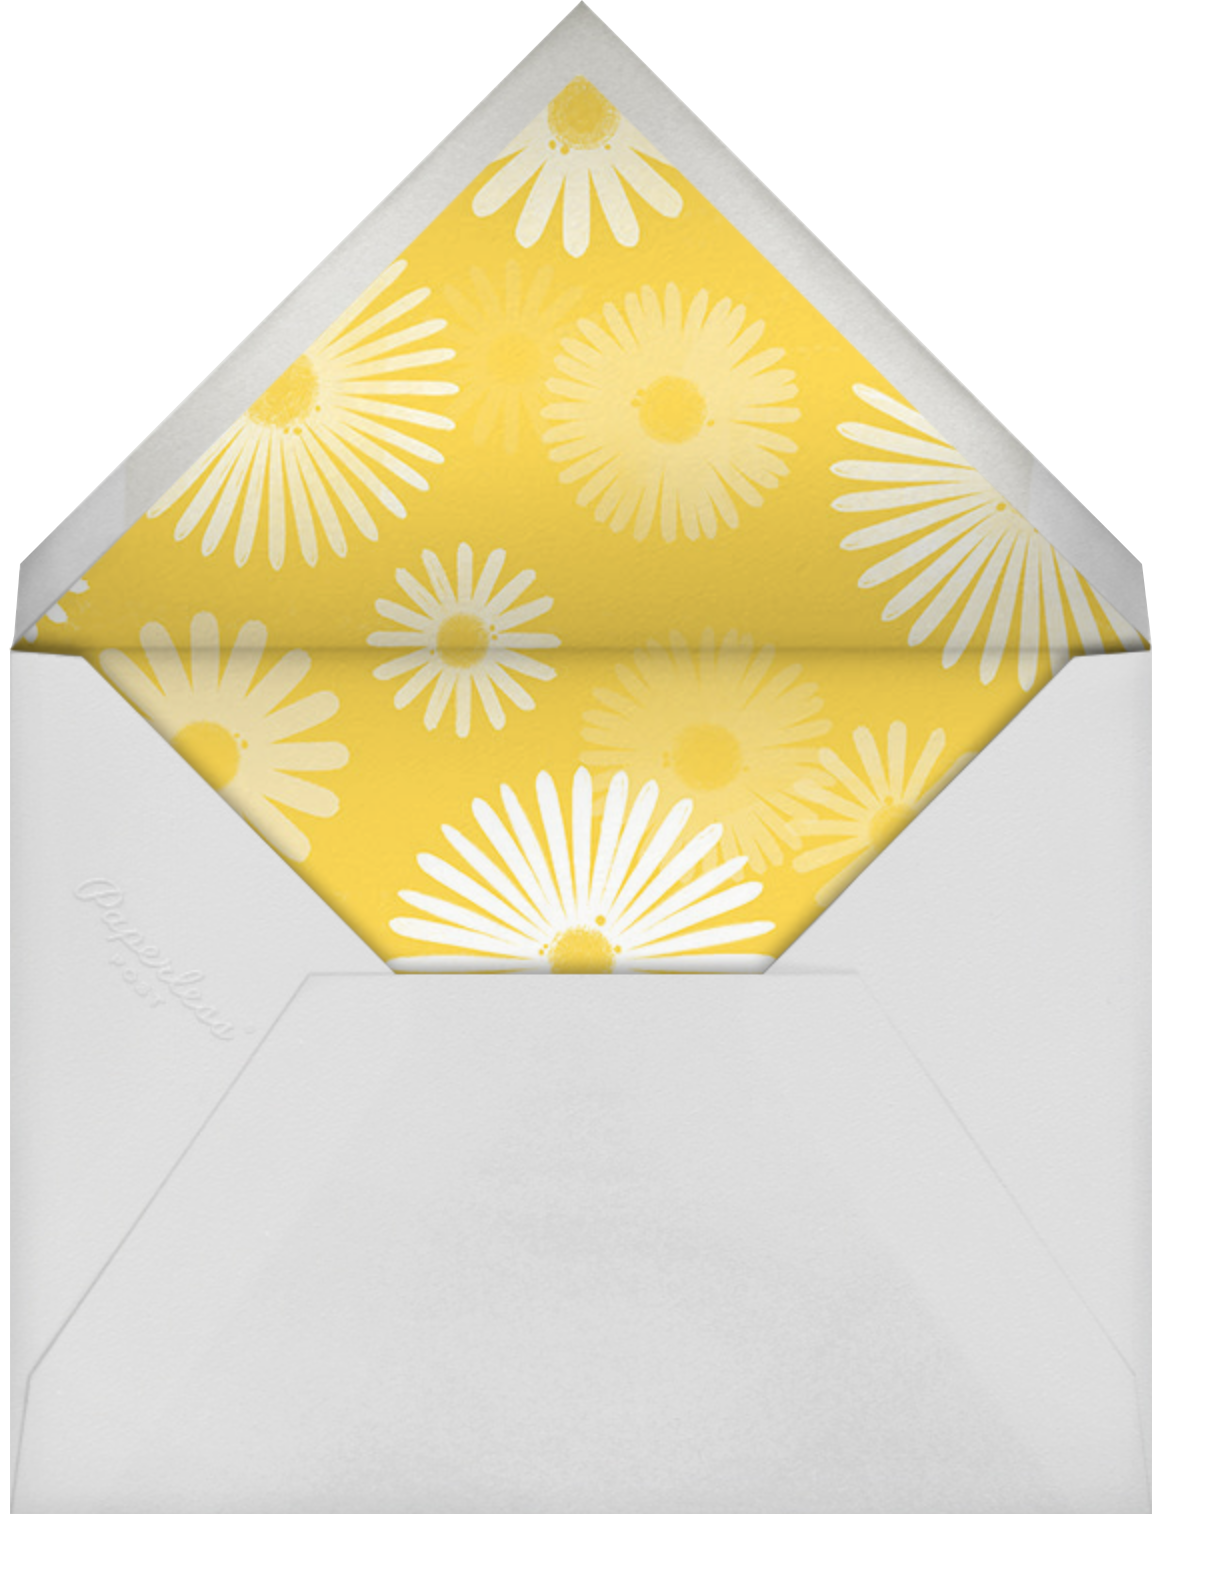 One Crazy Daisy - Paperless Post - First birthday - envelope back